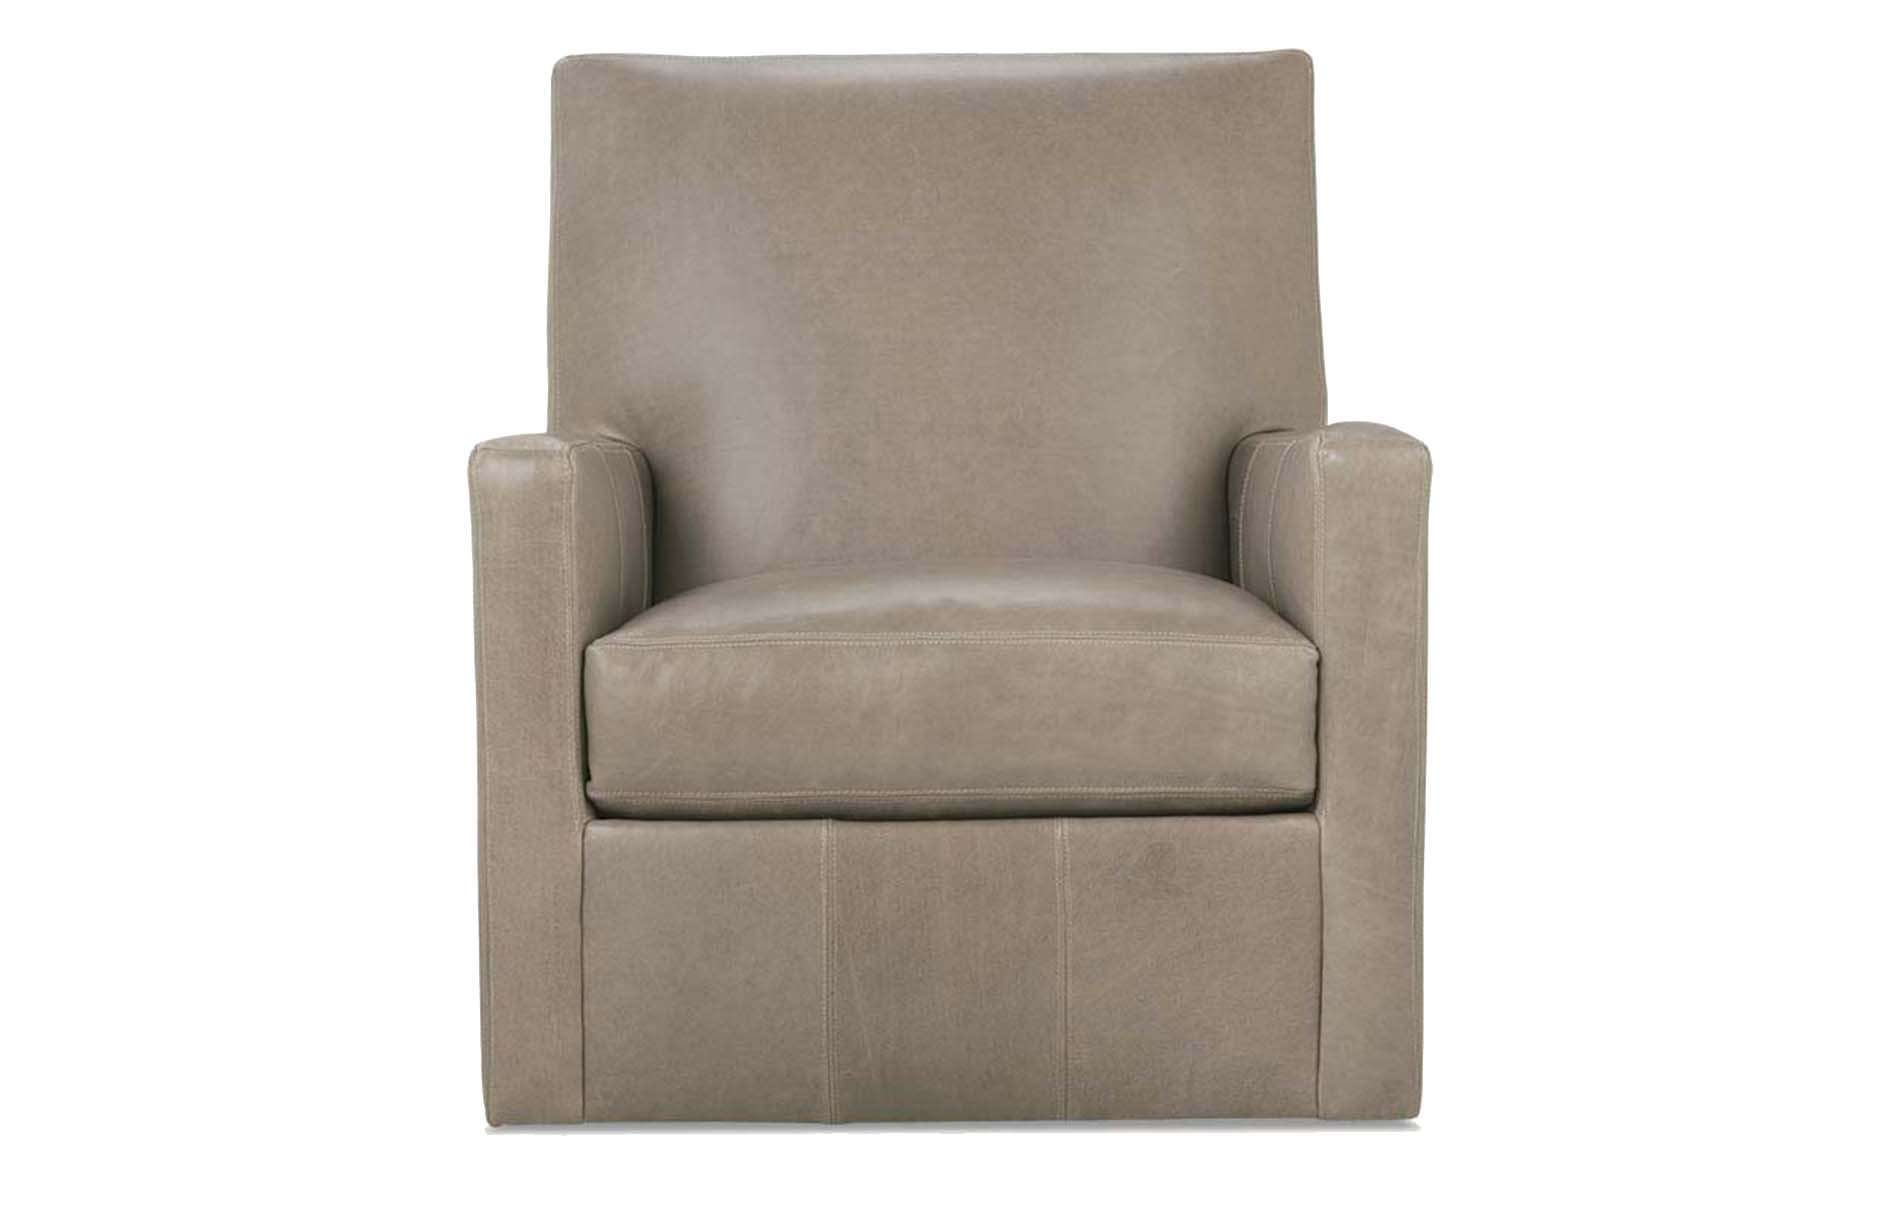 Chairs Accents Ottomans – Leather Swivel Glider Chair